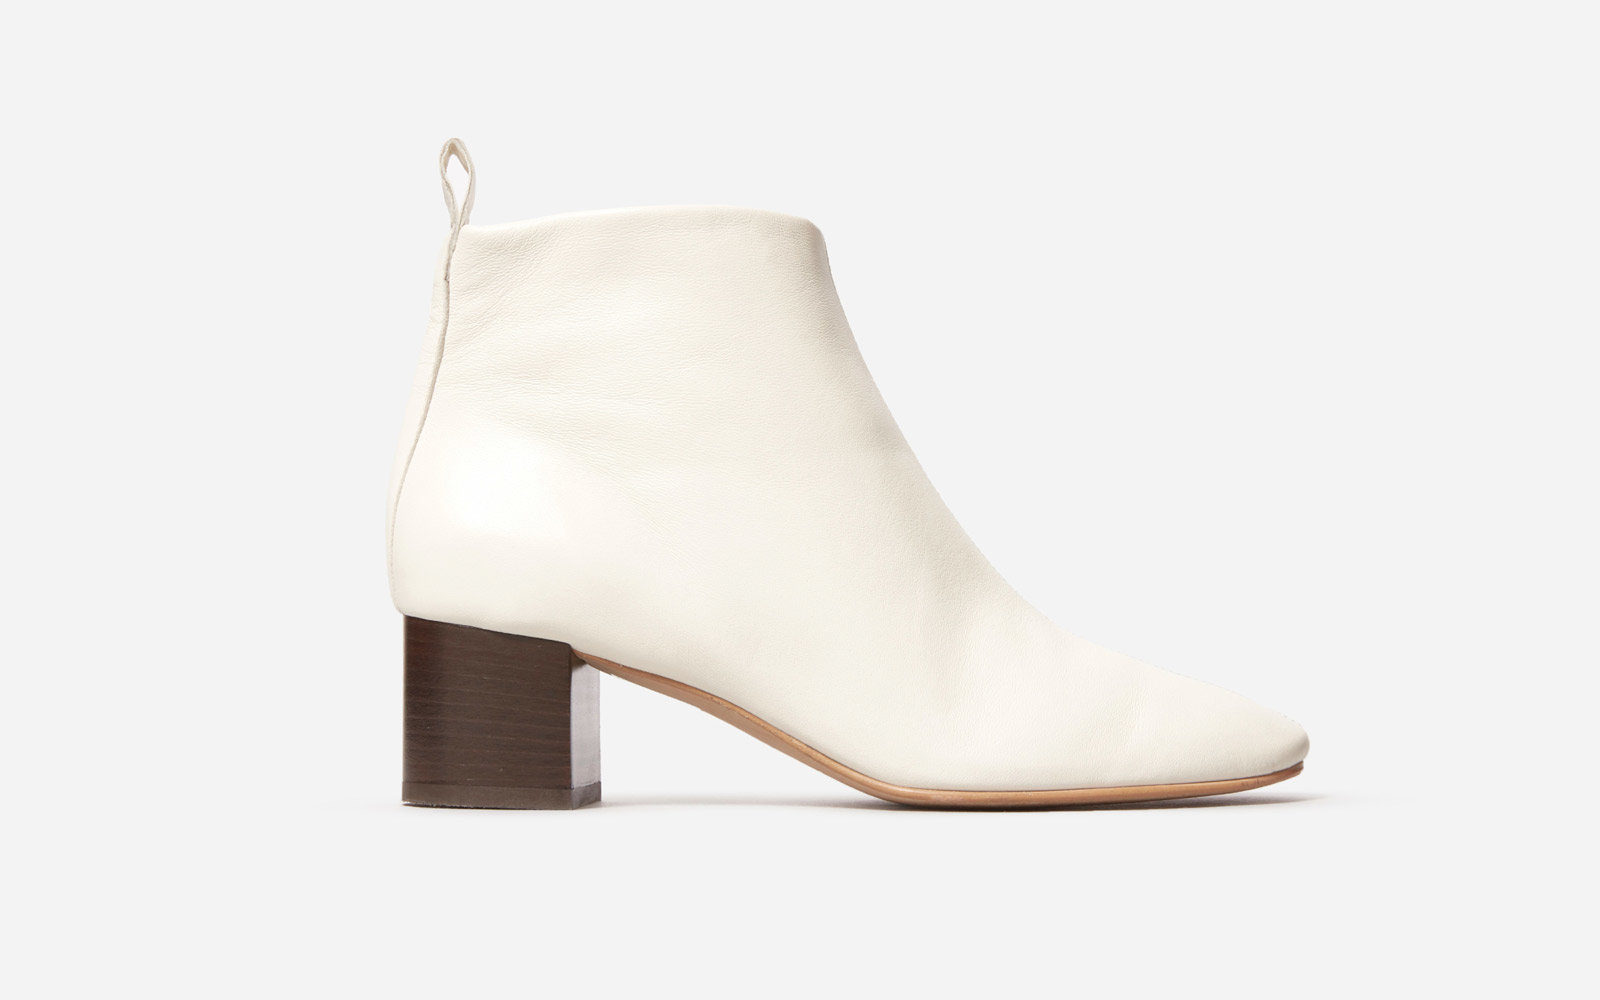 Everlane day boot in white